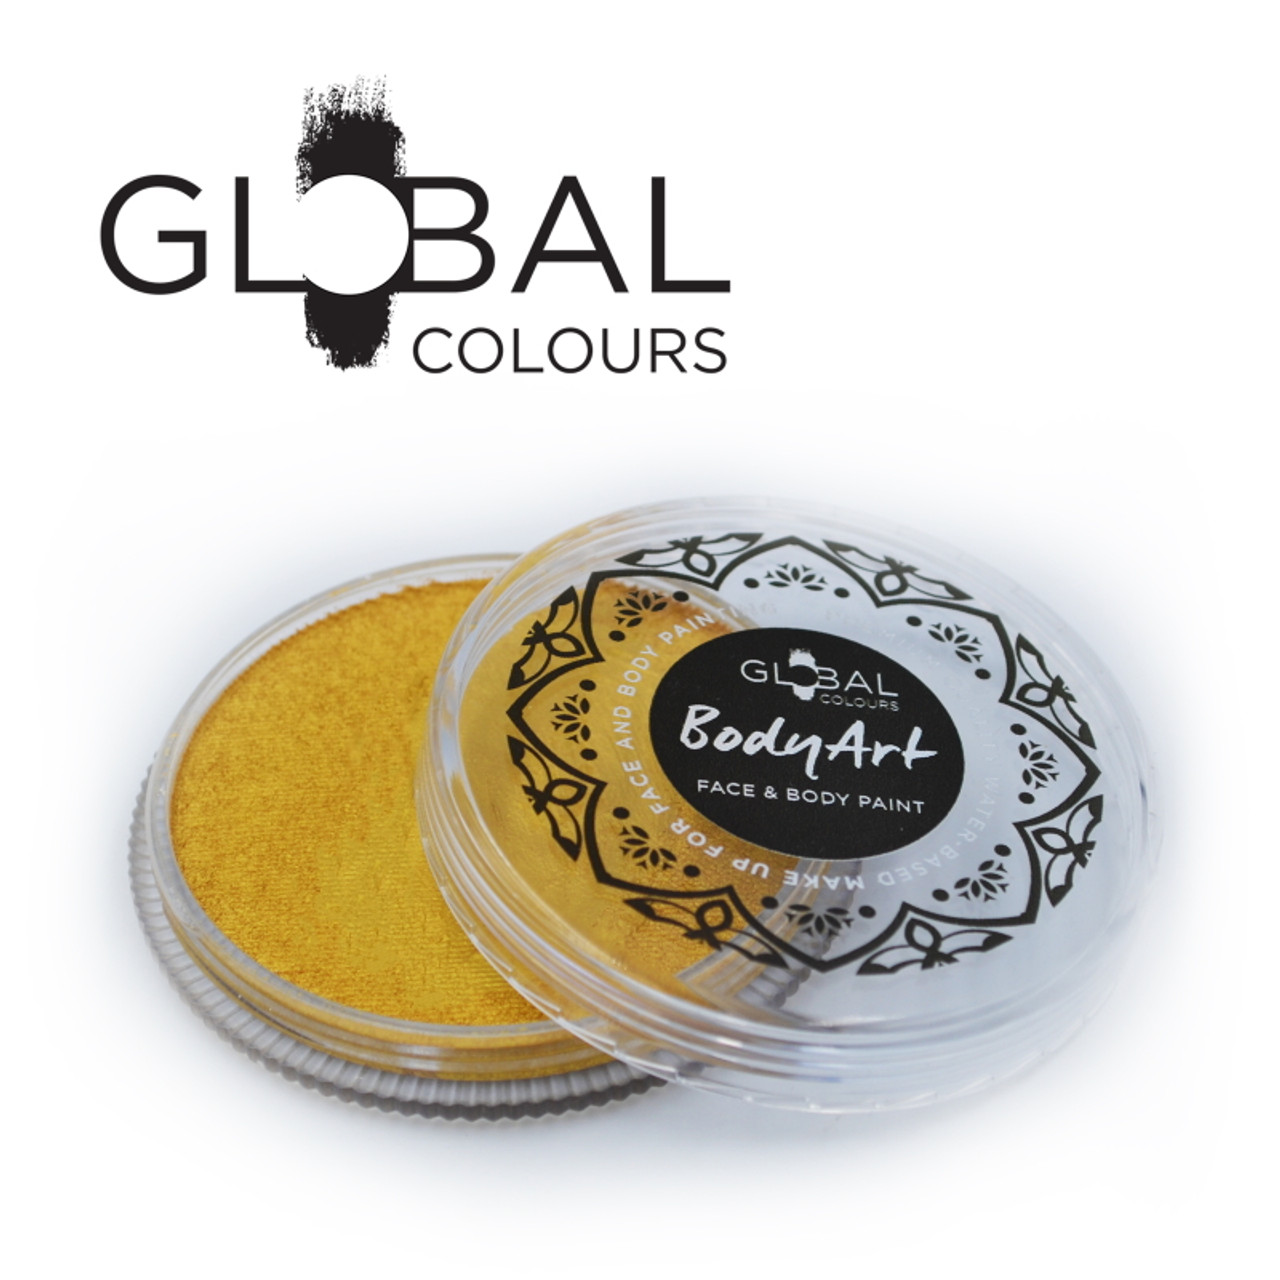 Metallic Gold Face And Body Paint Makeup By Global Colours 32g New Formula Face Paint Shop Australia